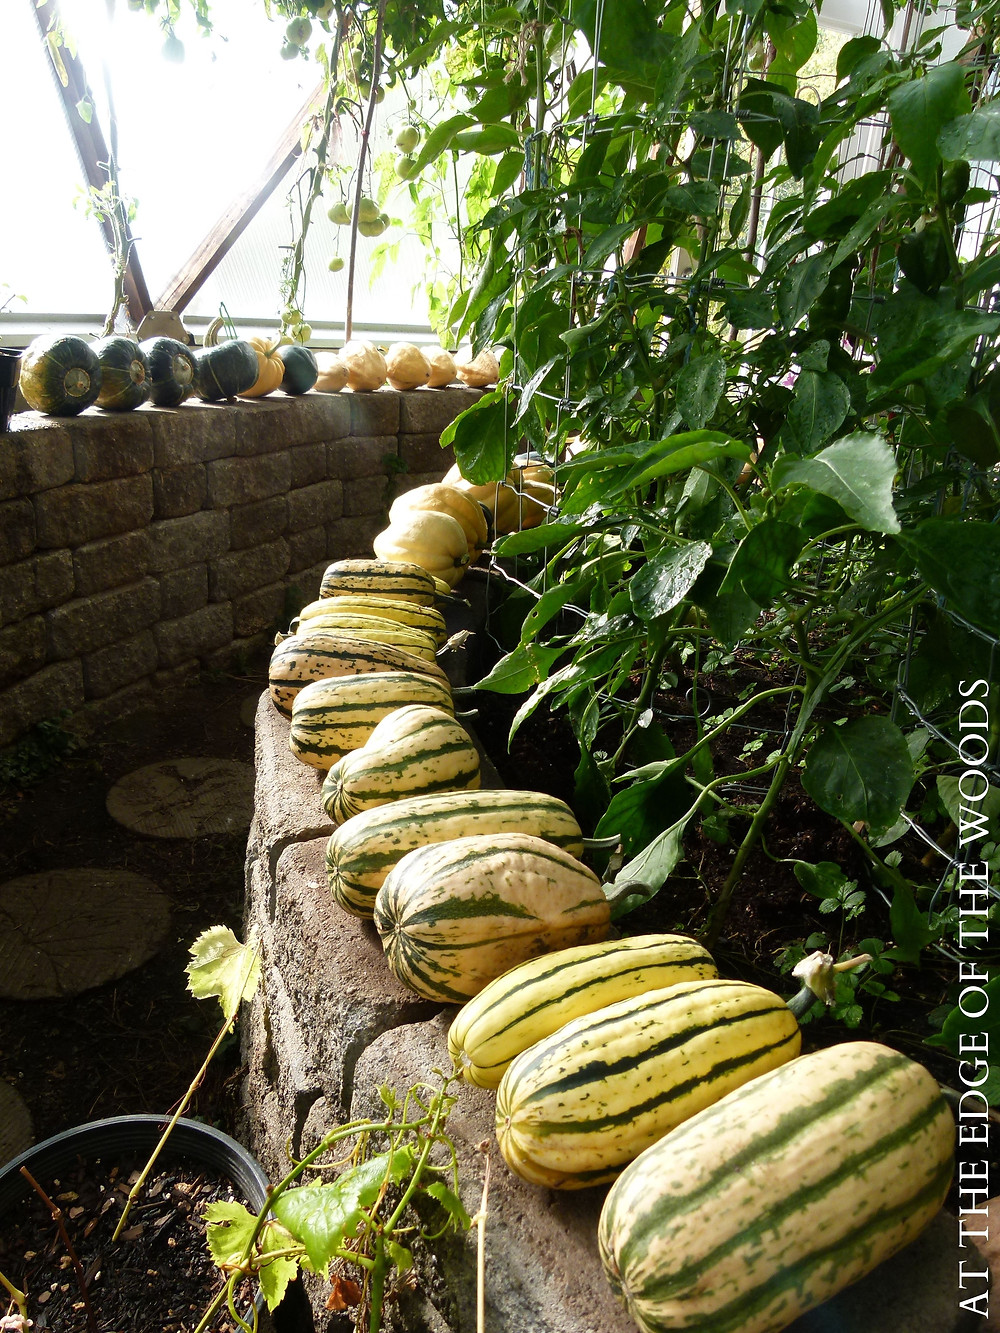 winter squash curing on the stone greenhouse walls